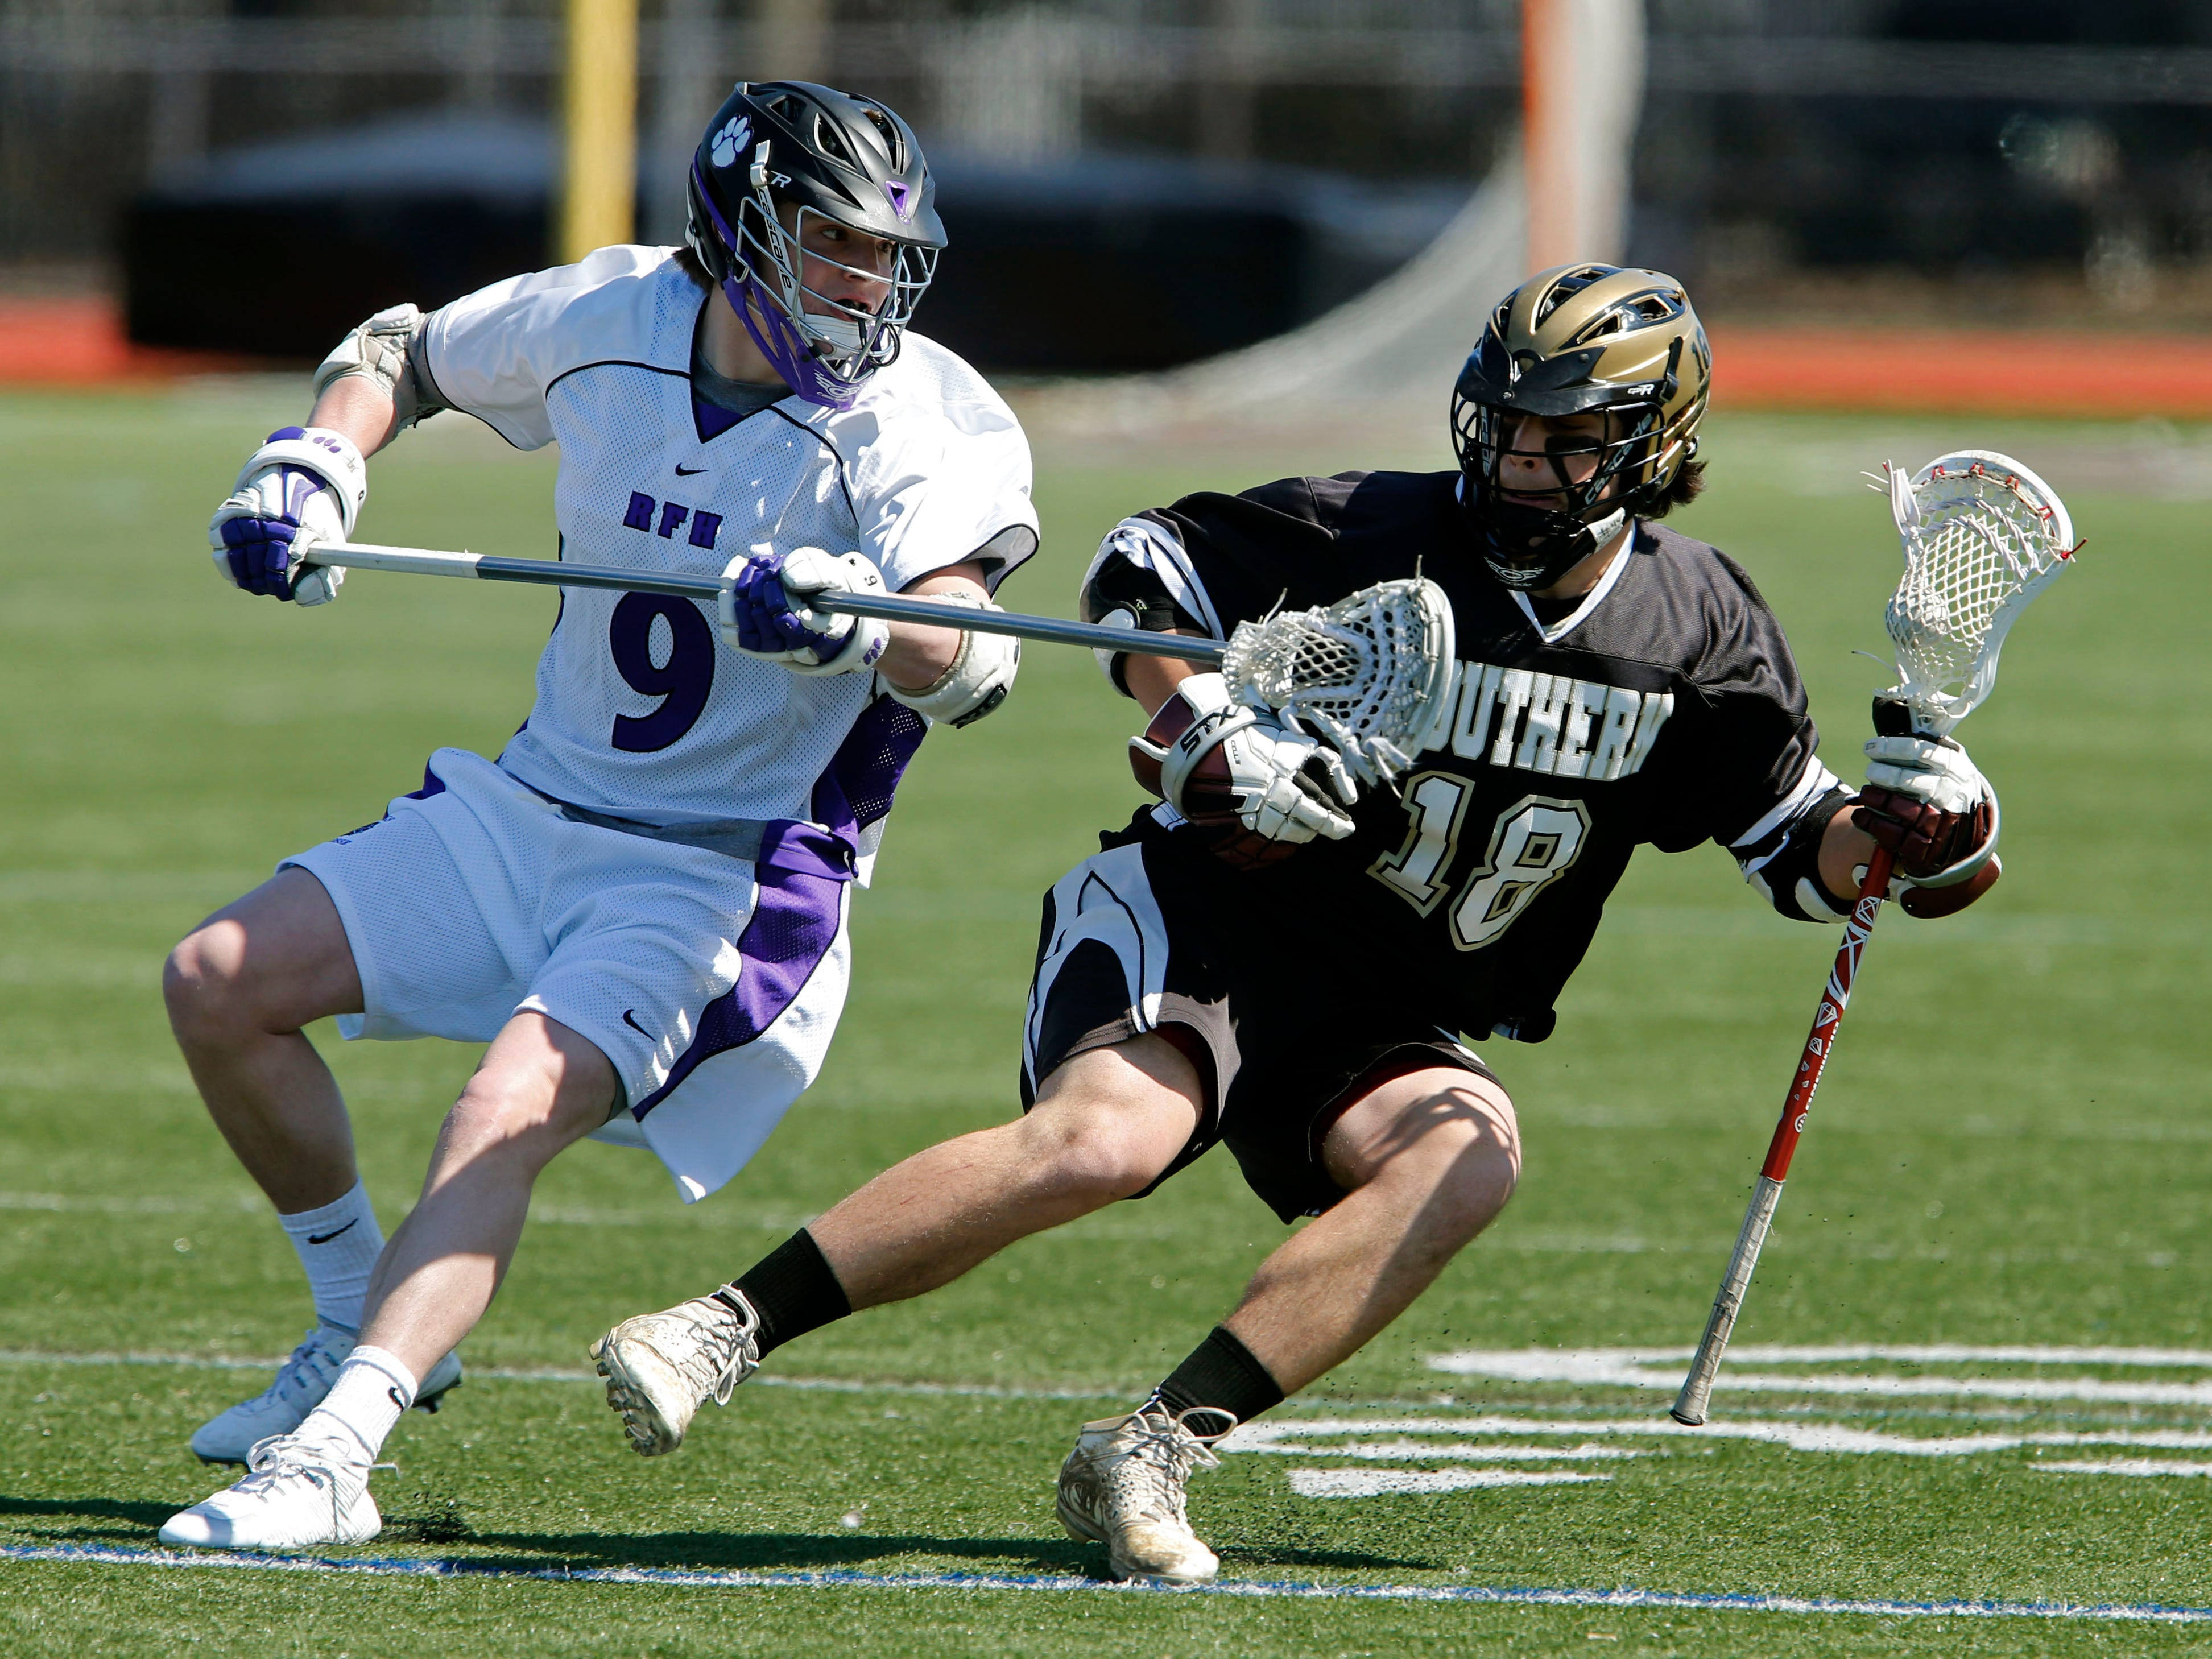 Emmet Jennings (9) of RFH defend against Dylan Jinks (18) of Southern Regional during boys lacrosse game at RumSon-Fair Haven High School. Rumon,NJ. Saturday, April 4, 2015. Noah K. Murray-Special for the Asbury Park Press ASB 0405 Southern at RFH blax gamer